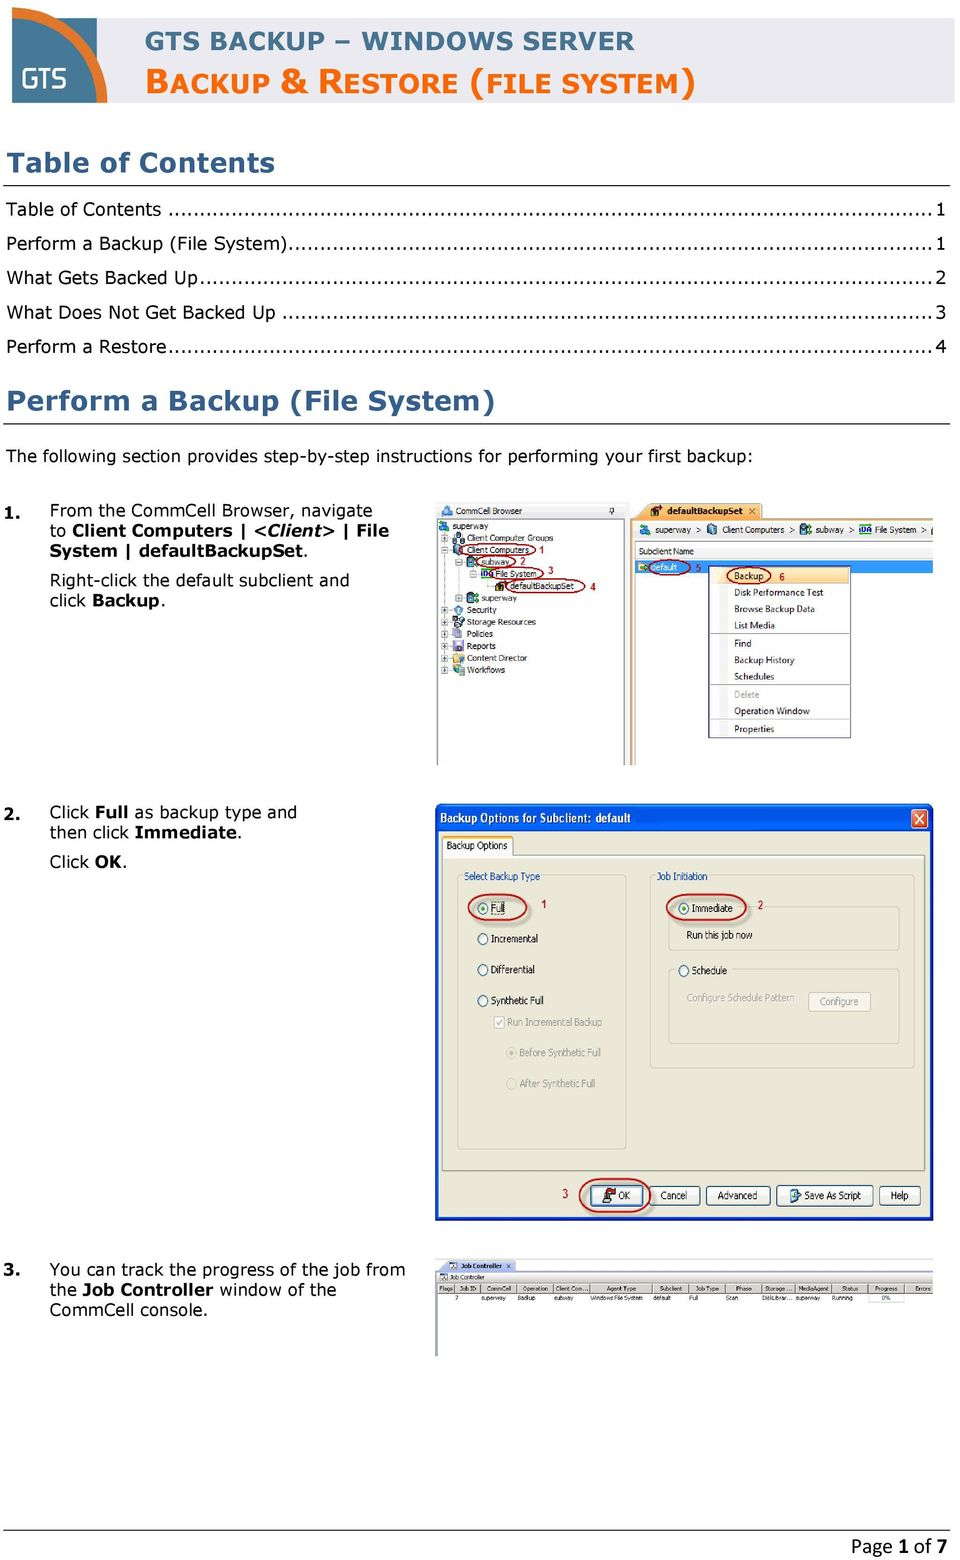 From the CommCell Browser, navigate to Client Computers <Client> File System defaultbackupset. Right-click the default subclient and click Backup. 2.